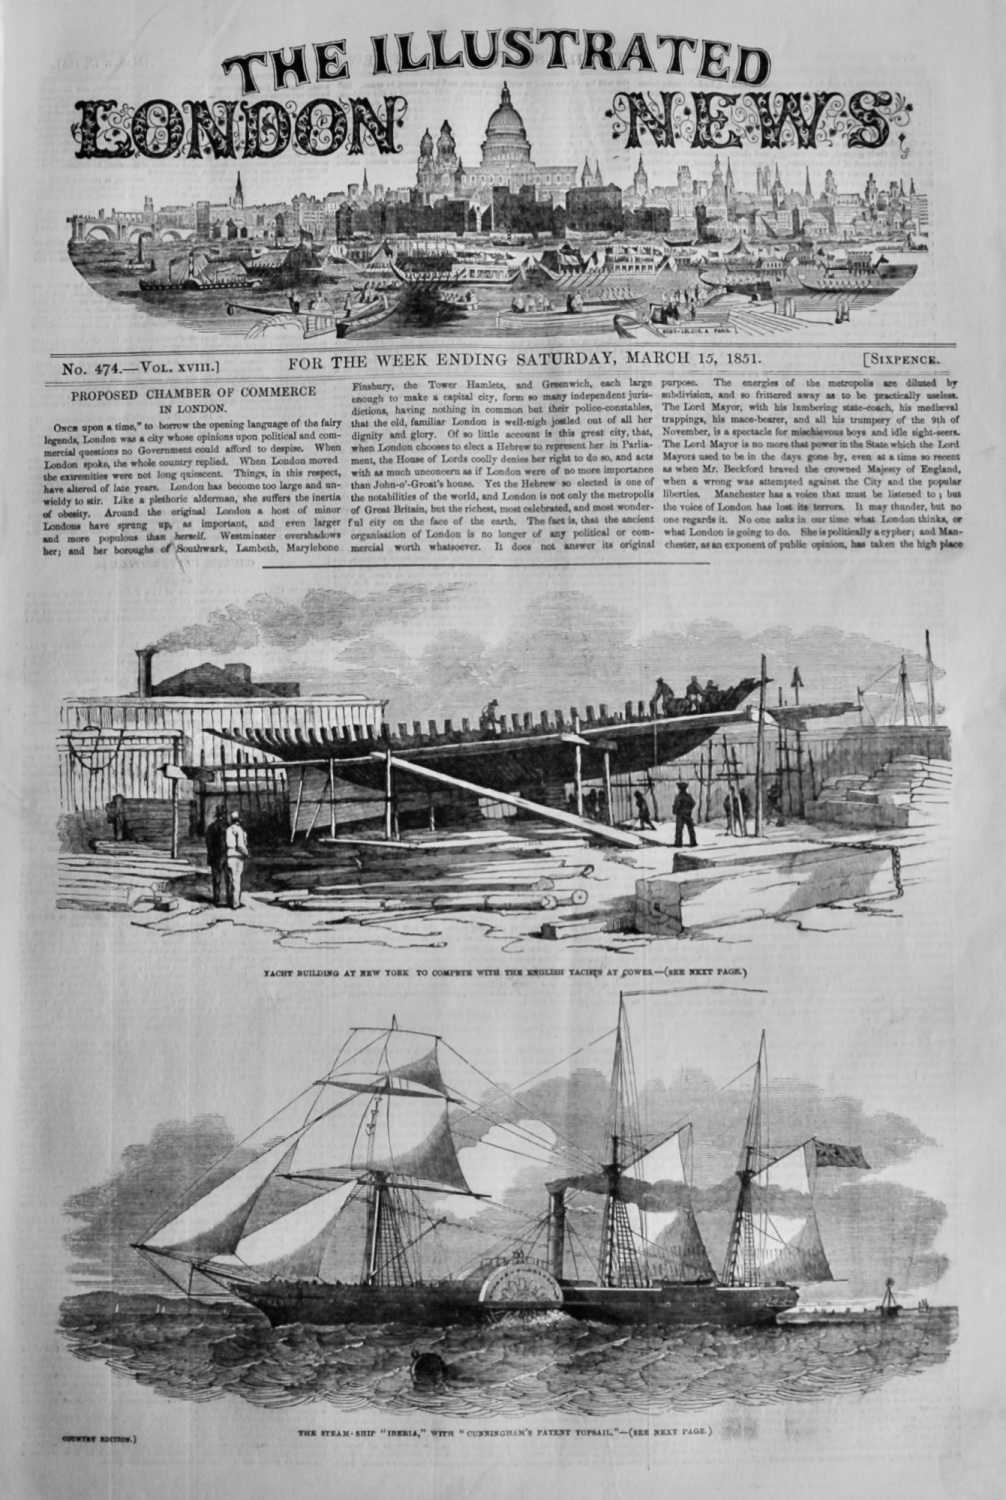 Illustrated London News, March 15th 1851.